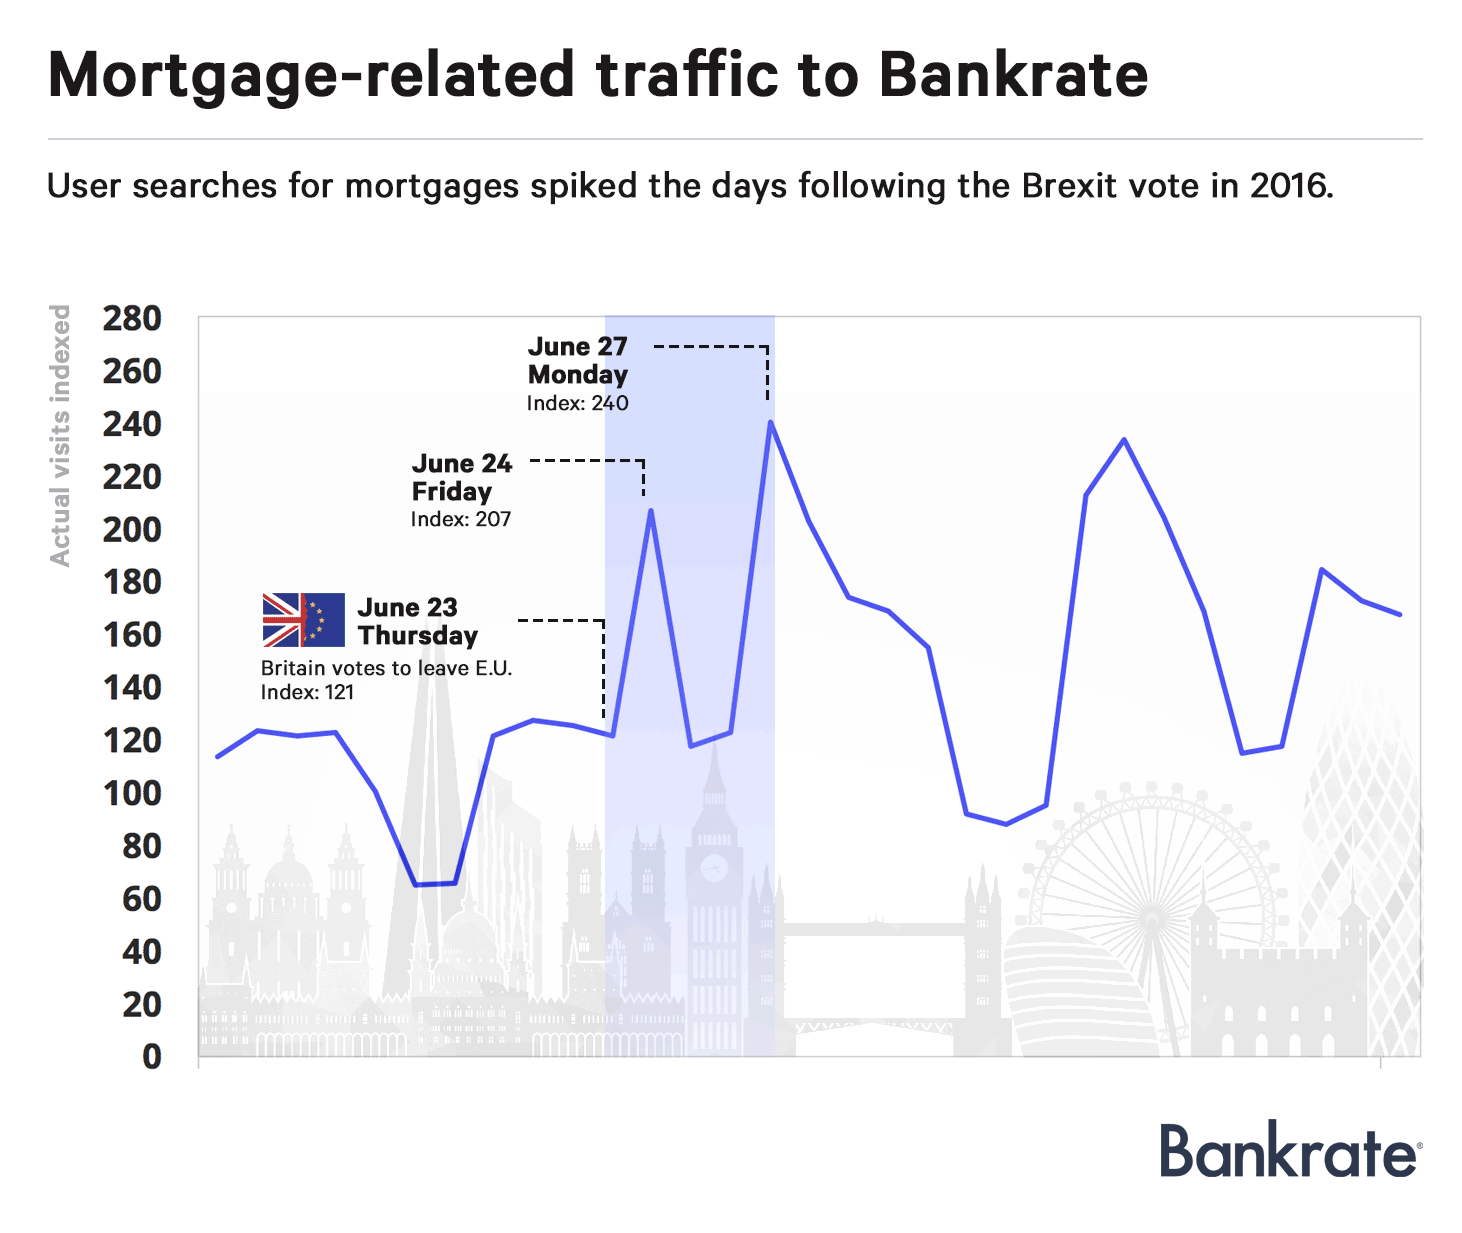 User searches for mortgages spiked the days following the Brexit vote in 2016.